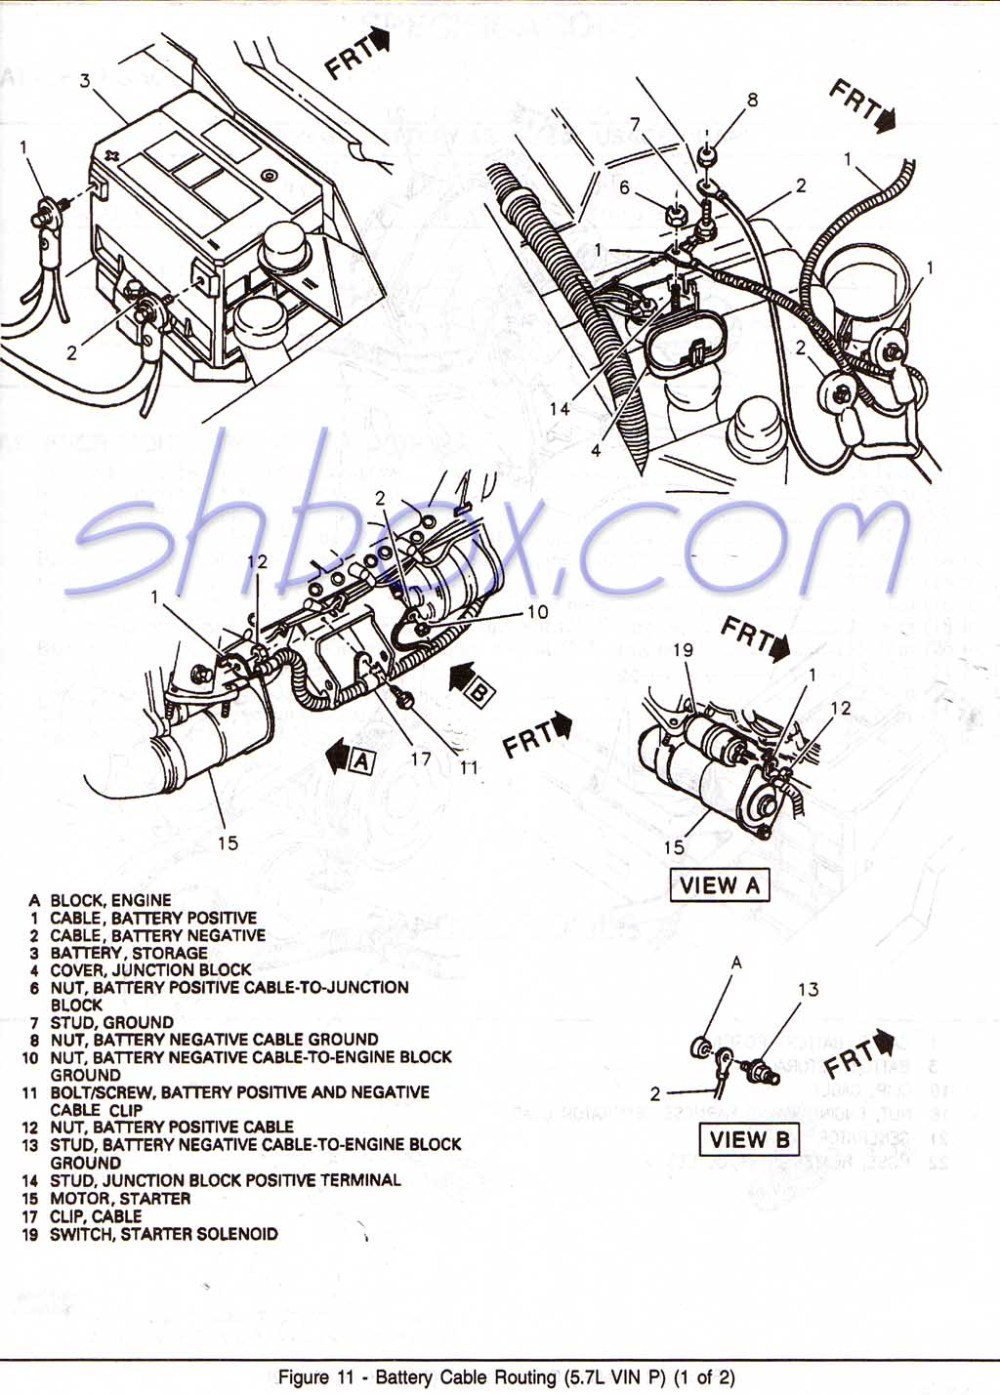 medium resolution of 1996 honda civic dx into 1996 honda civic ex wiring harness is different car idles